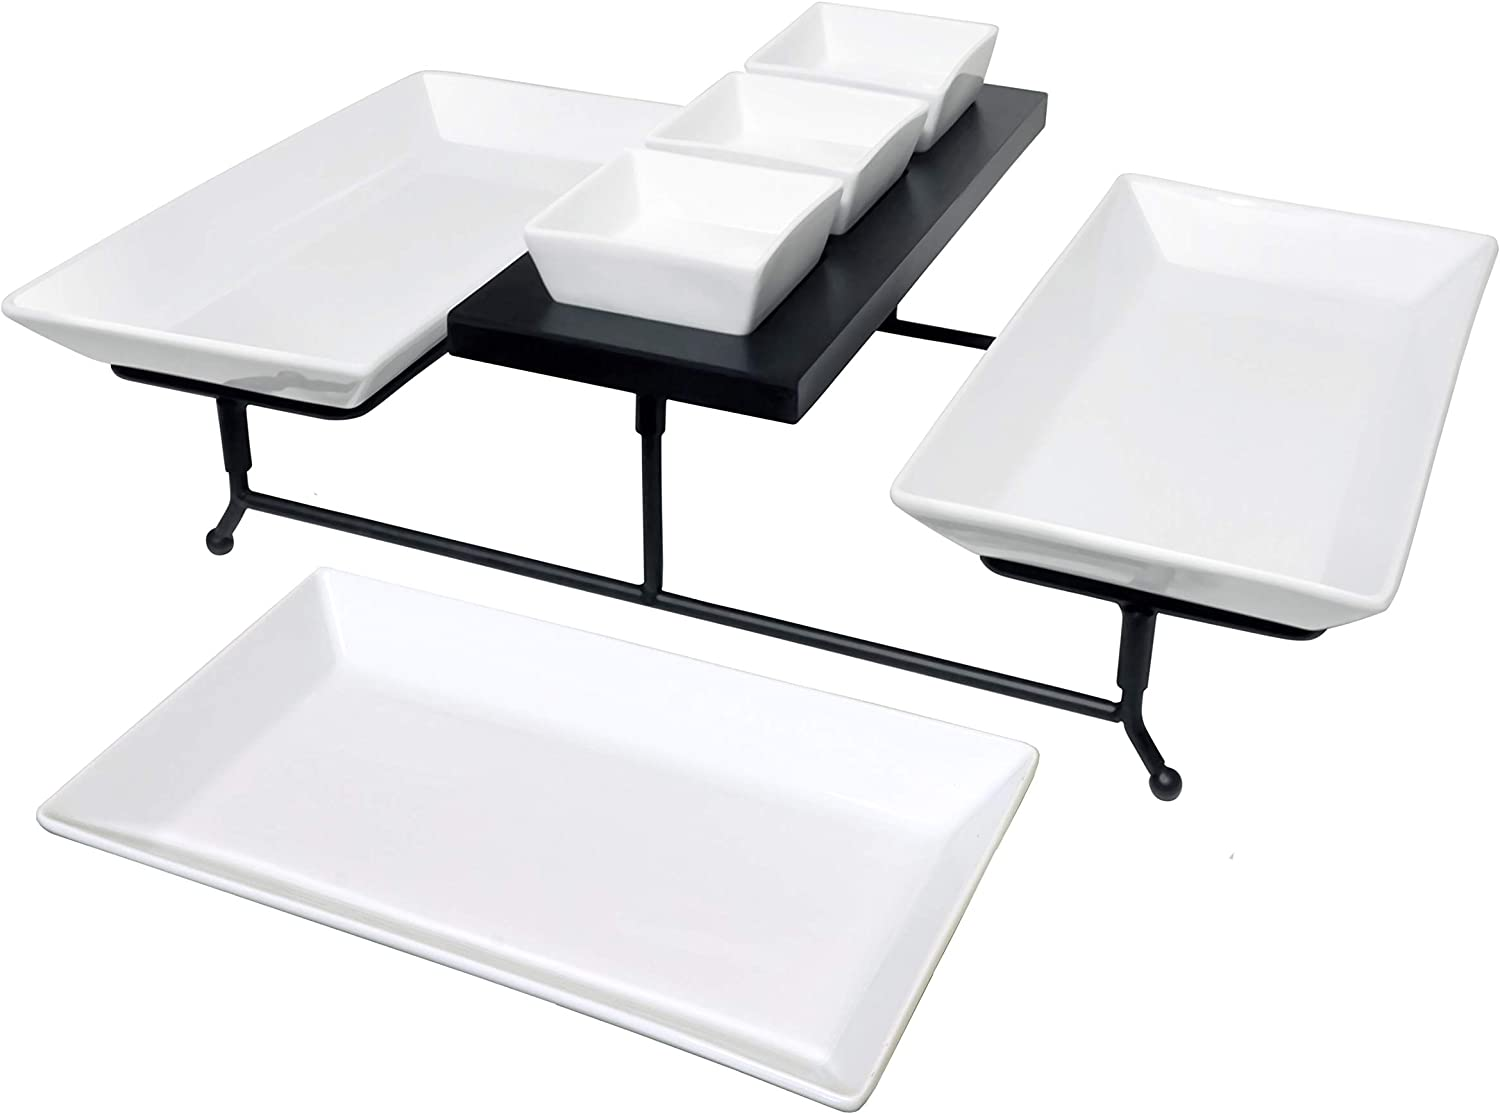 The Most Versatile 3 Tier Serving Tray. Collapsible metal stand with 3 large plates and 3 bowls on black wood base. Tiered party food server display for appetizers, cupcakes, fruit, cheese, desserts.